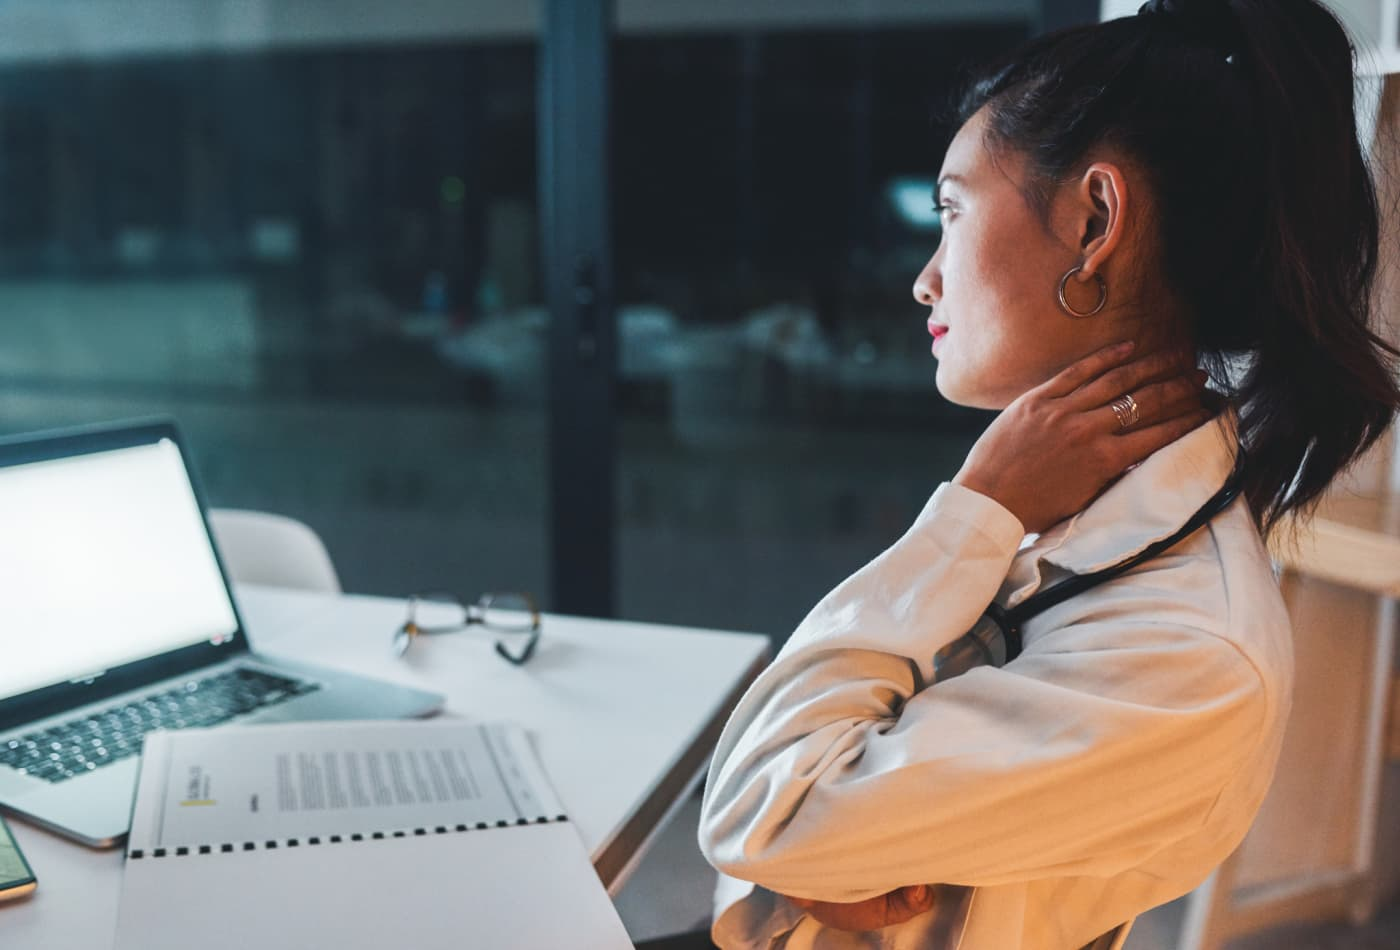 'I'm putting my entire life on hold': How workers are grappling with Covid burnout